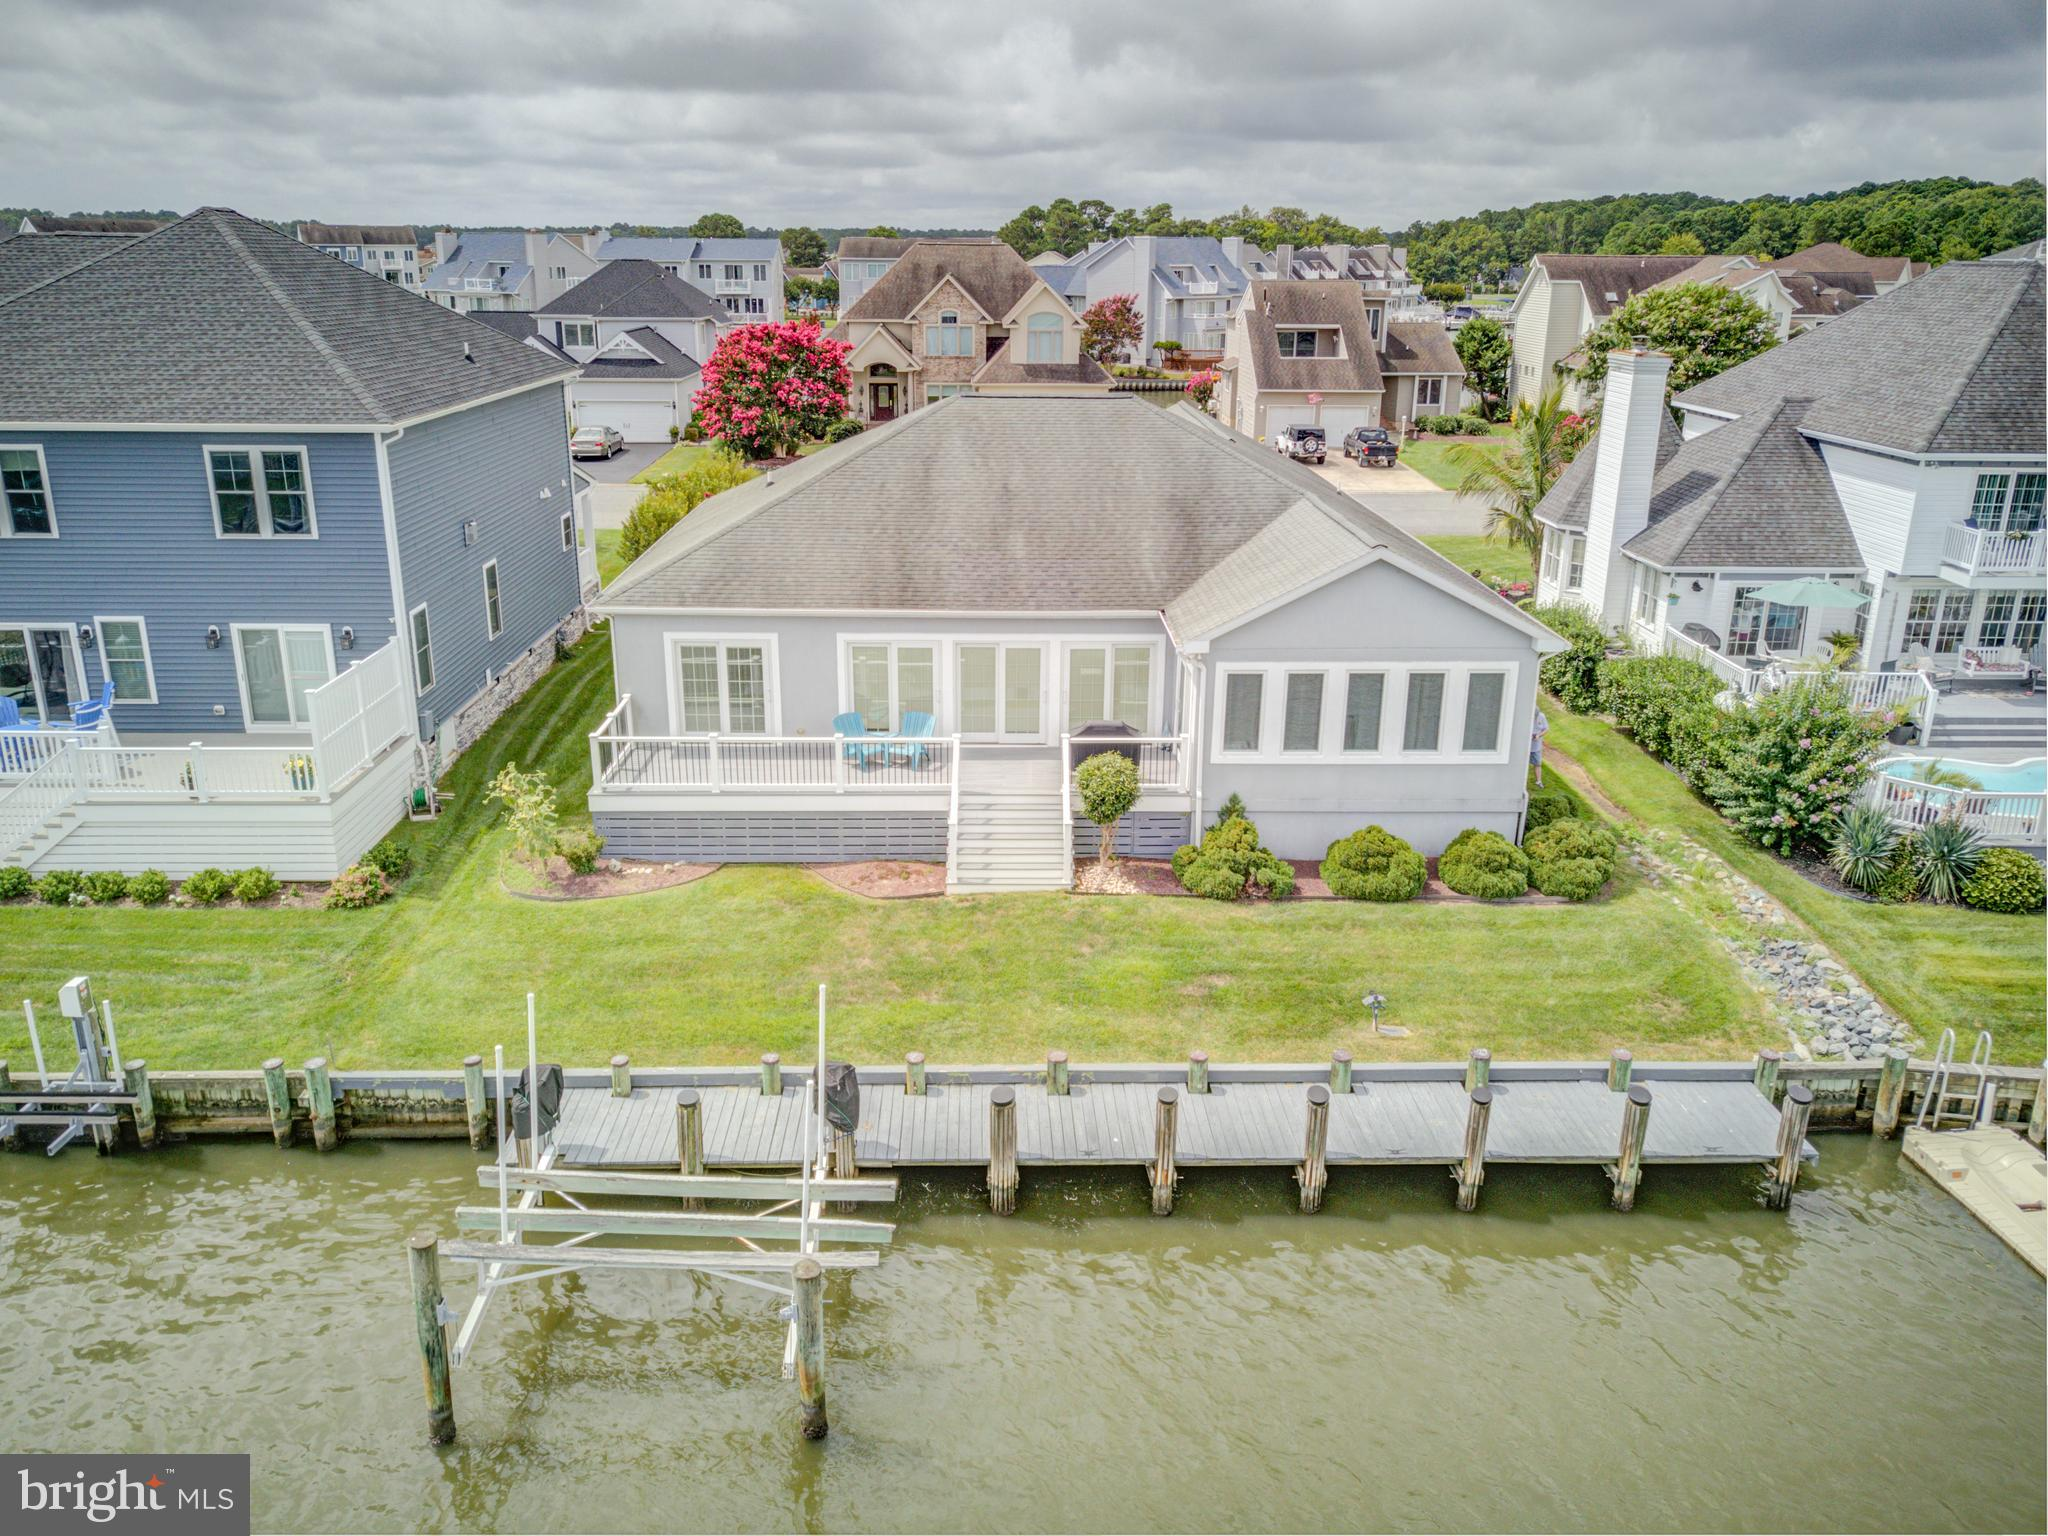 NEW PRICE . Dreams do come true! Looking for a waterfront 1 level custom-built home with boat dock and lift with quick access to Bay and Ocean? Look no further. Very large open Living and Dining room with tile floors and lots of windows. Gas Fireplace added and TV included. Sun Room/den directly off that with access to large rear deck with gas grill hooked up to central line. Primary bedroom has a primary bath with walk-in closets, shower and separate areas with twin sinks. Laundry room with Bonus/Office room off to one side and pantry closet for additional storage. Large kitchen with great bar seating plus a desk area and pantry. 2 car garage and concrete driveway. 60 ft. long pier with boat lift.  Nice rear yard. Remaining furniture will stay along with 4 TVs and Surround Sound system. Ready for your enjoyment immediately.